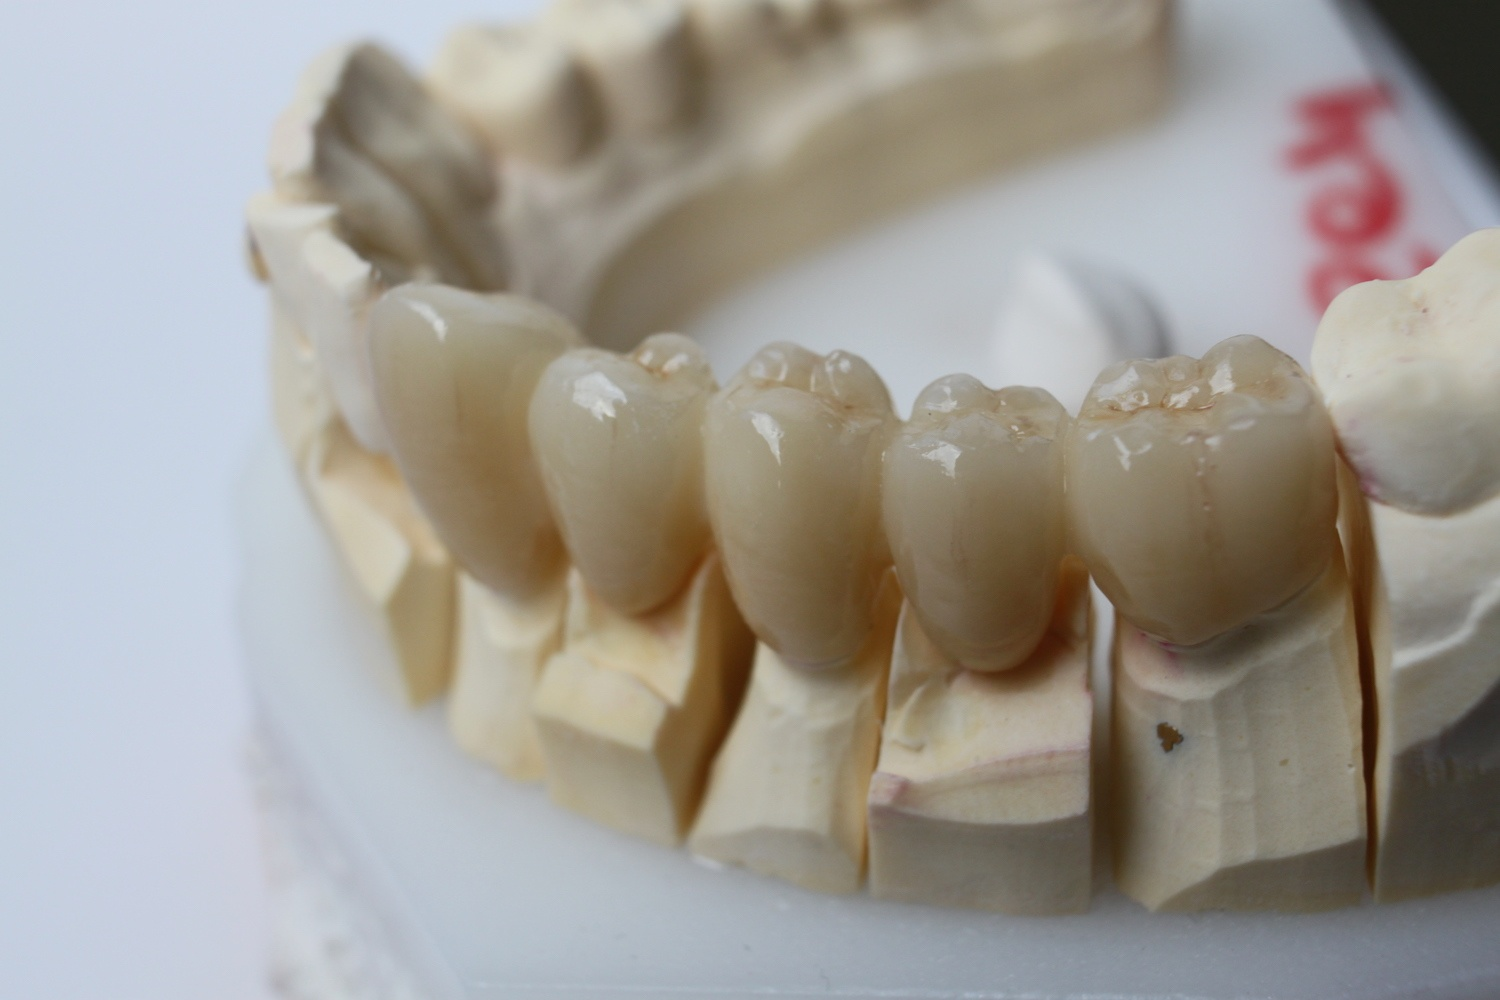 All About Zirconia Crowns: What They Are, How They're Made